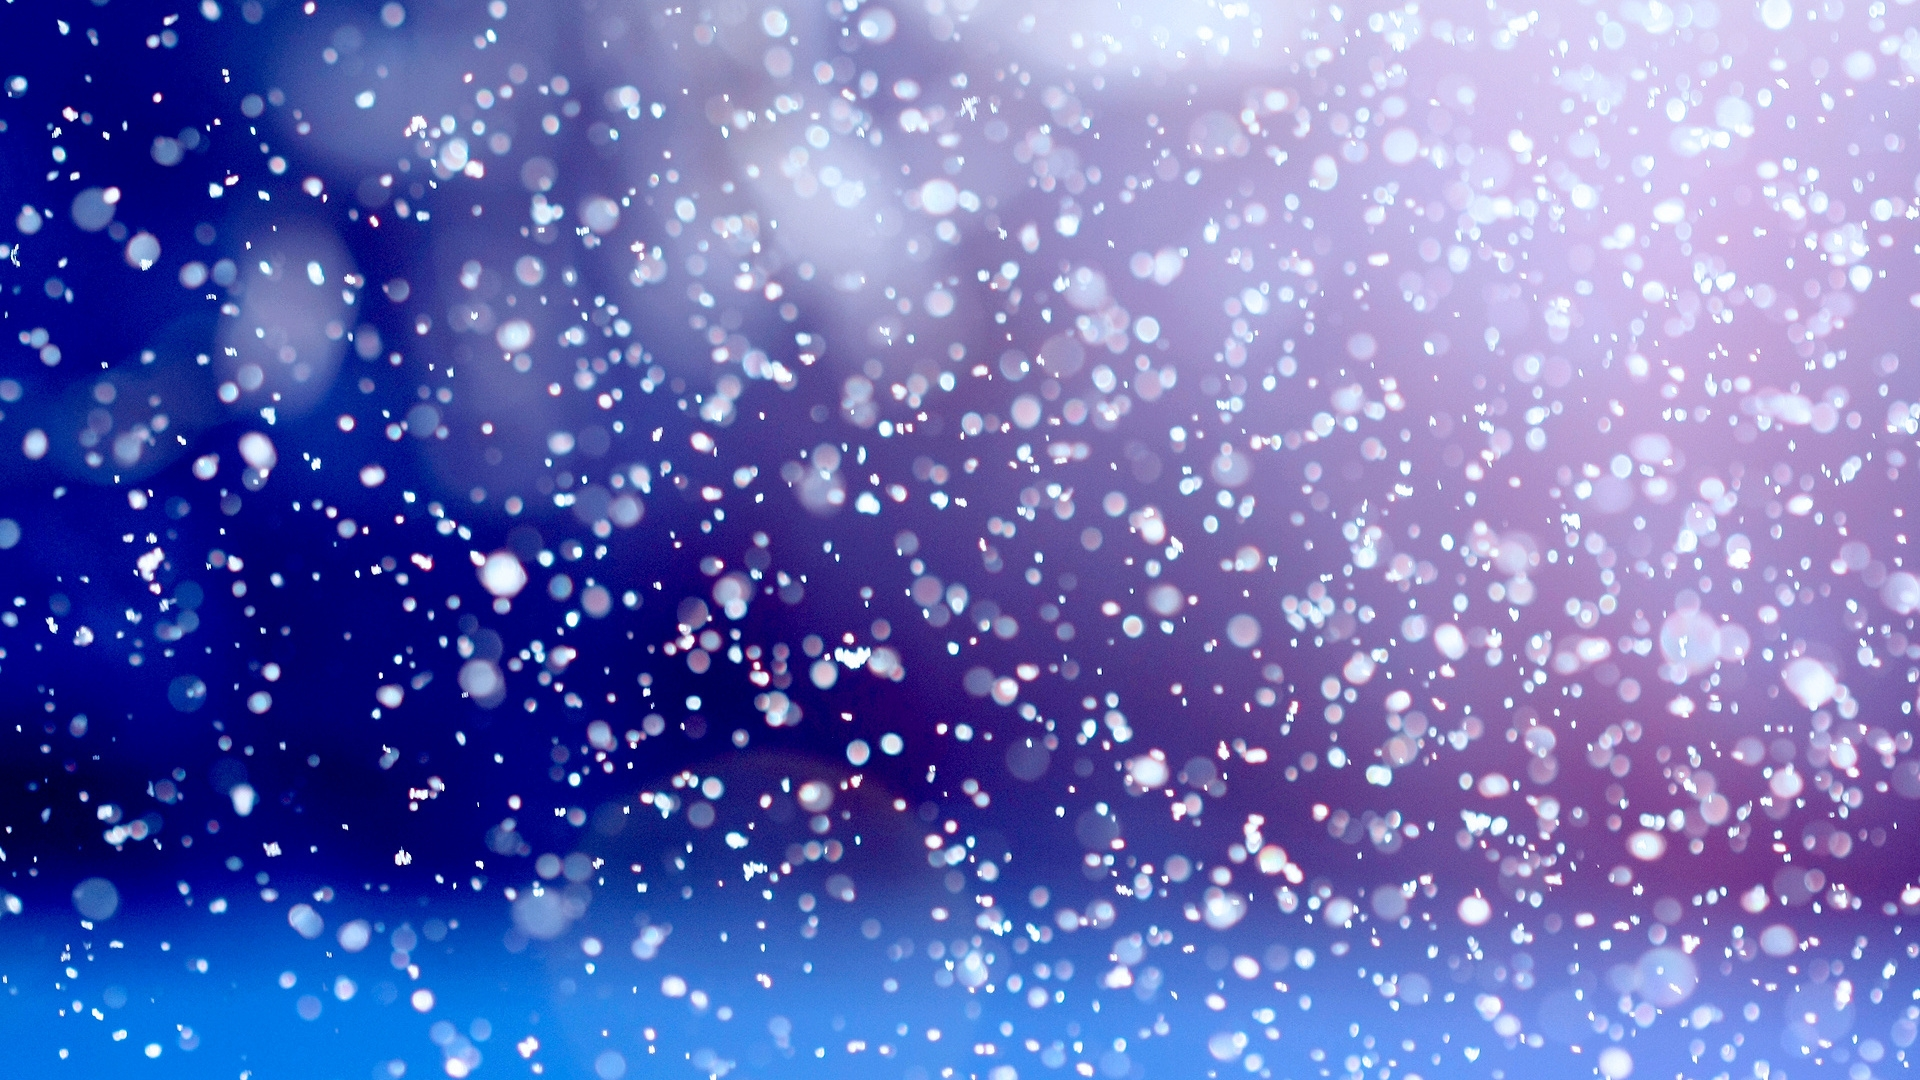 Download-1920x1080-Weather-June-Snow-Purple-Blue-wallpaper-wp3404950